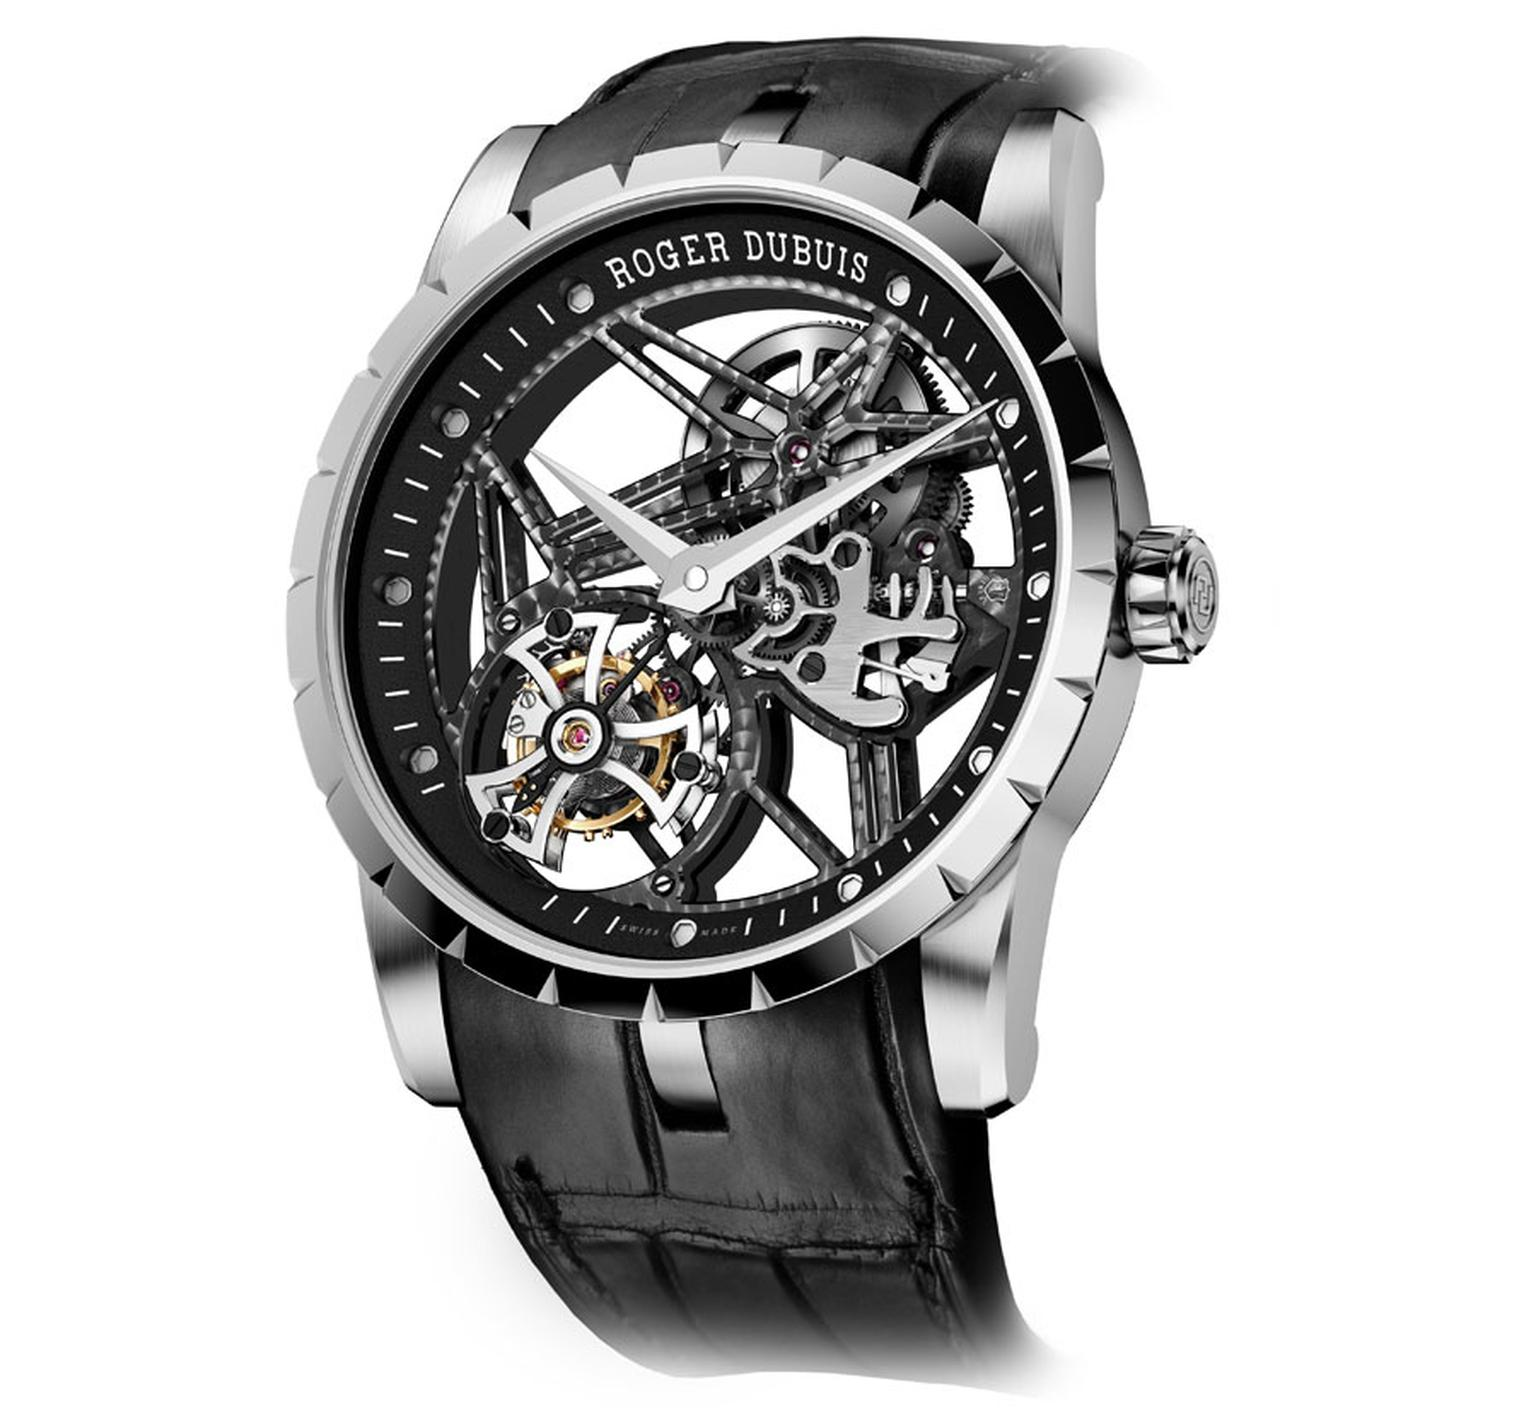 Roger-Dubuis-Excalibur-42-Skeleton-Tourbillon